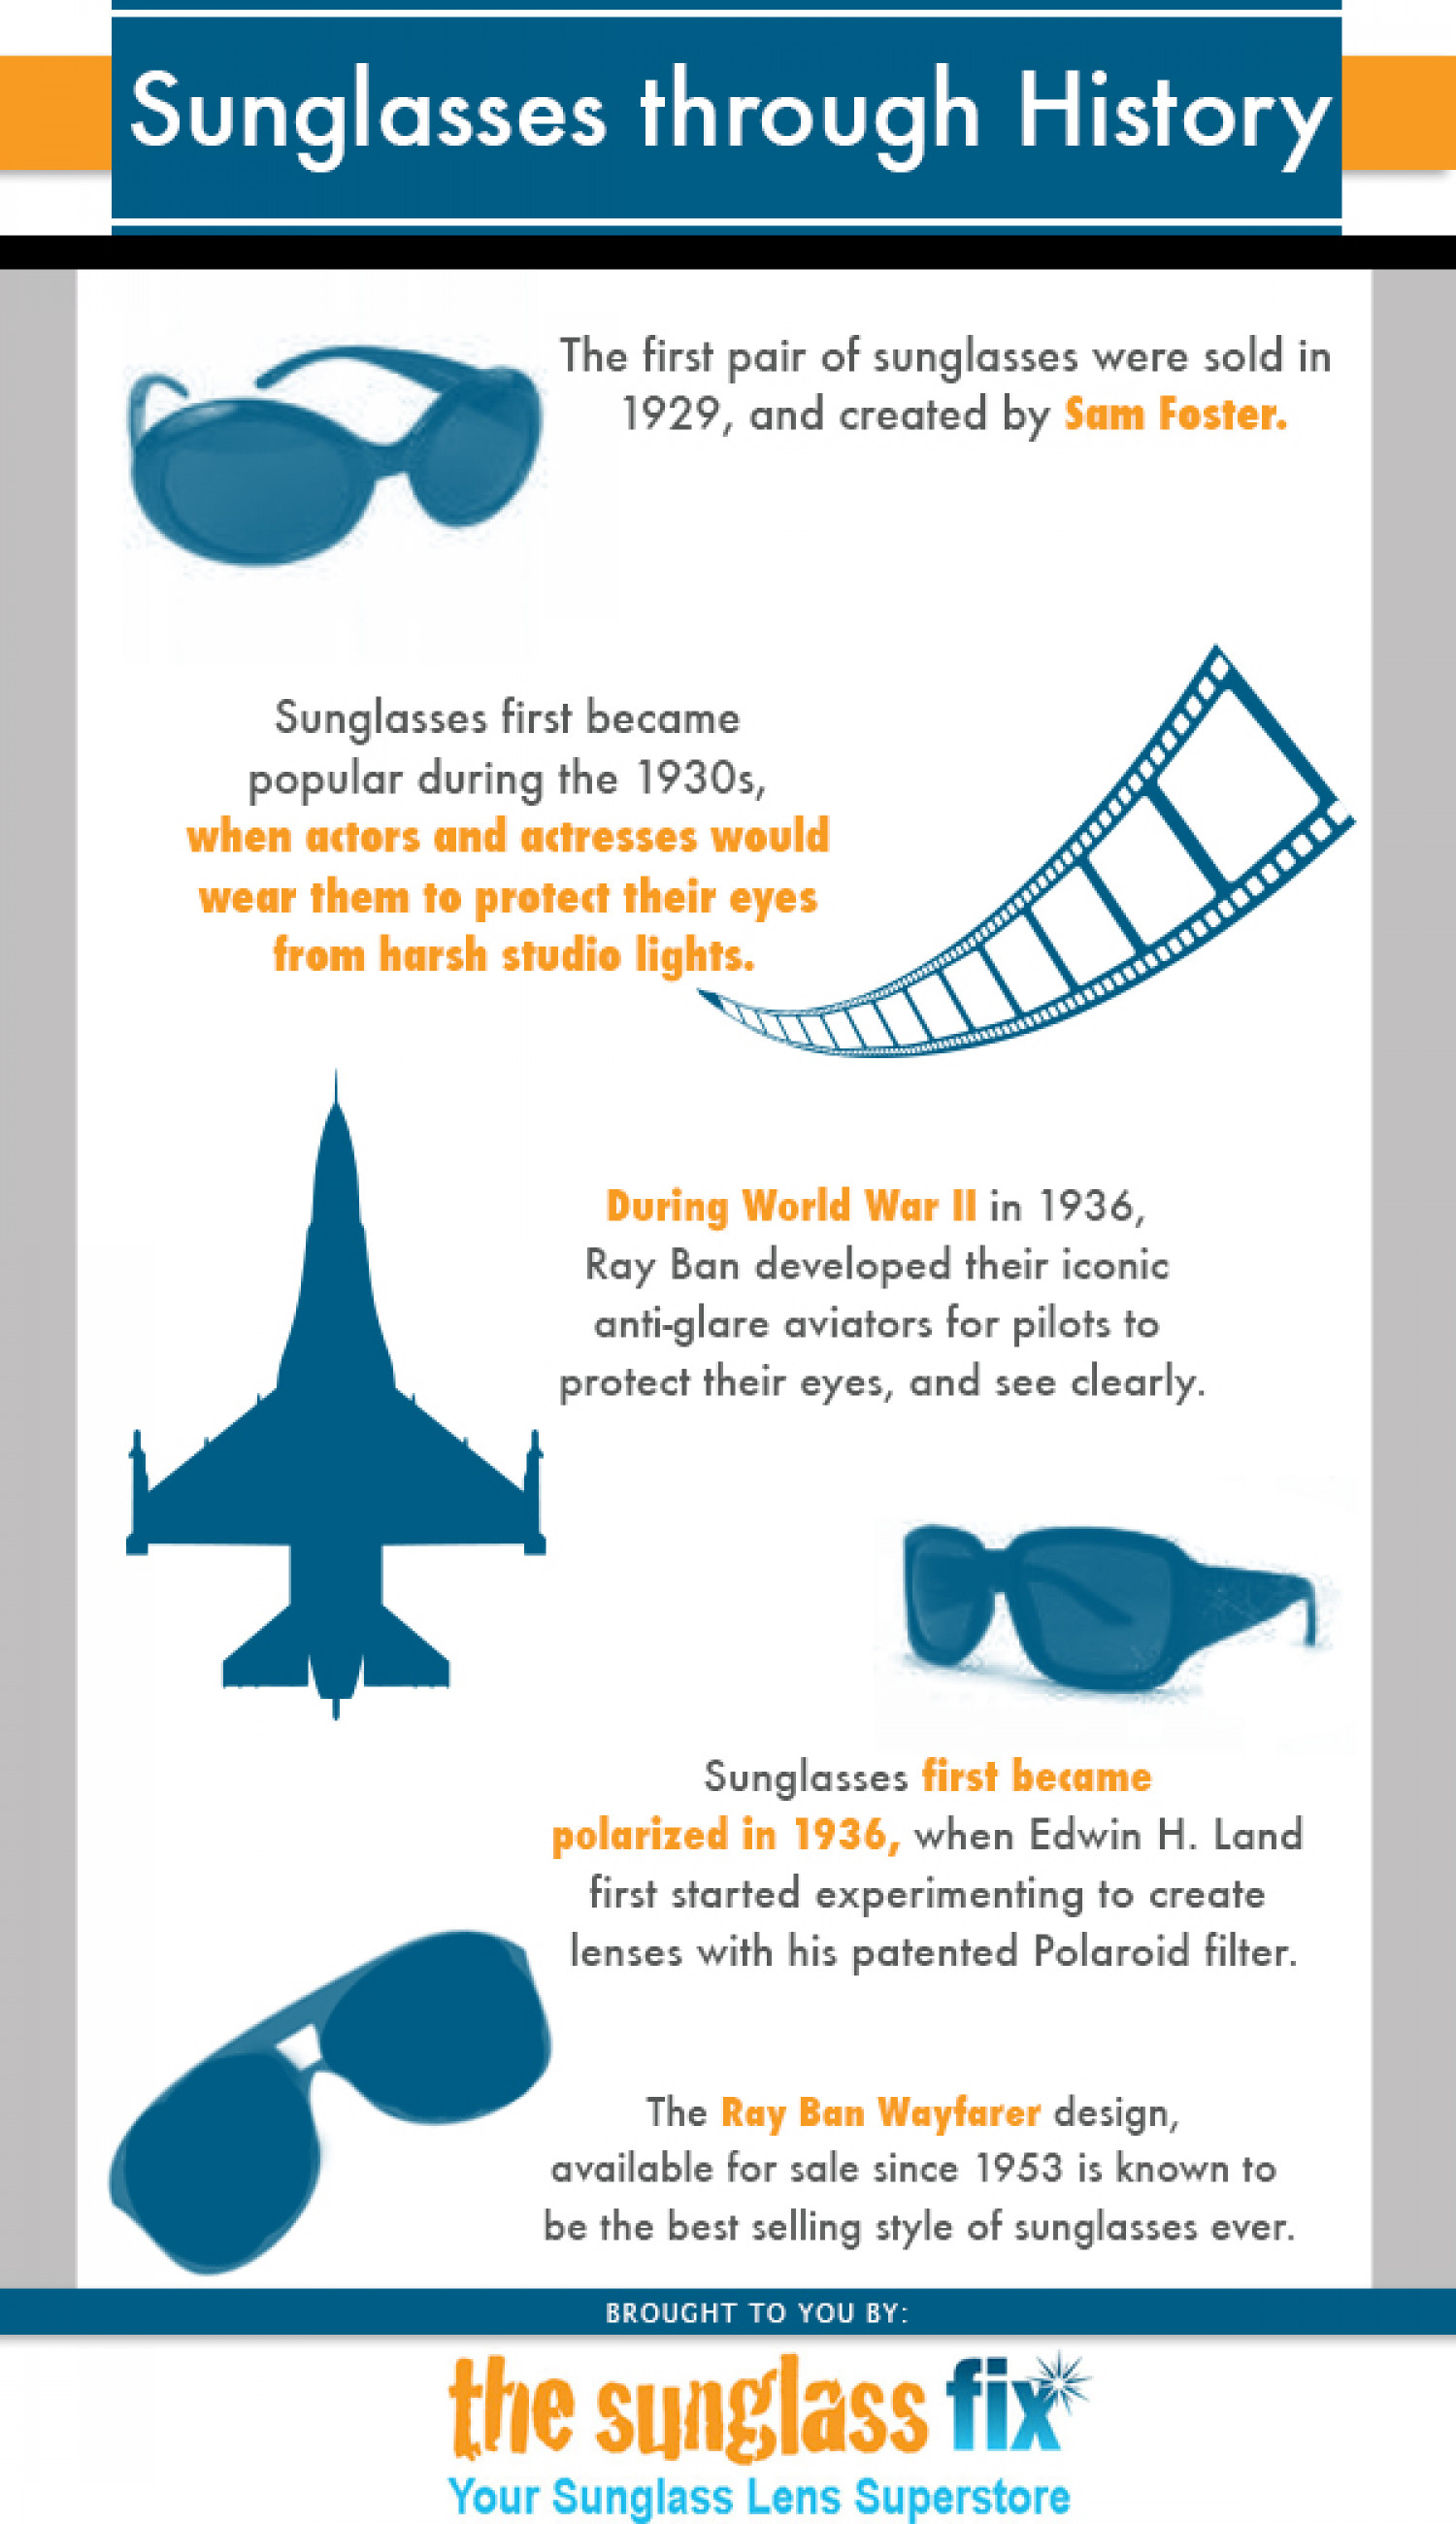 Sunglasses through History Infographic